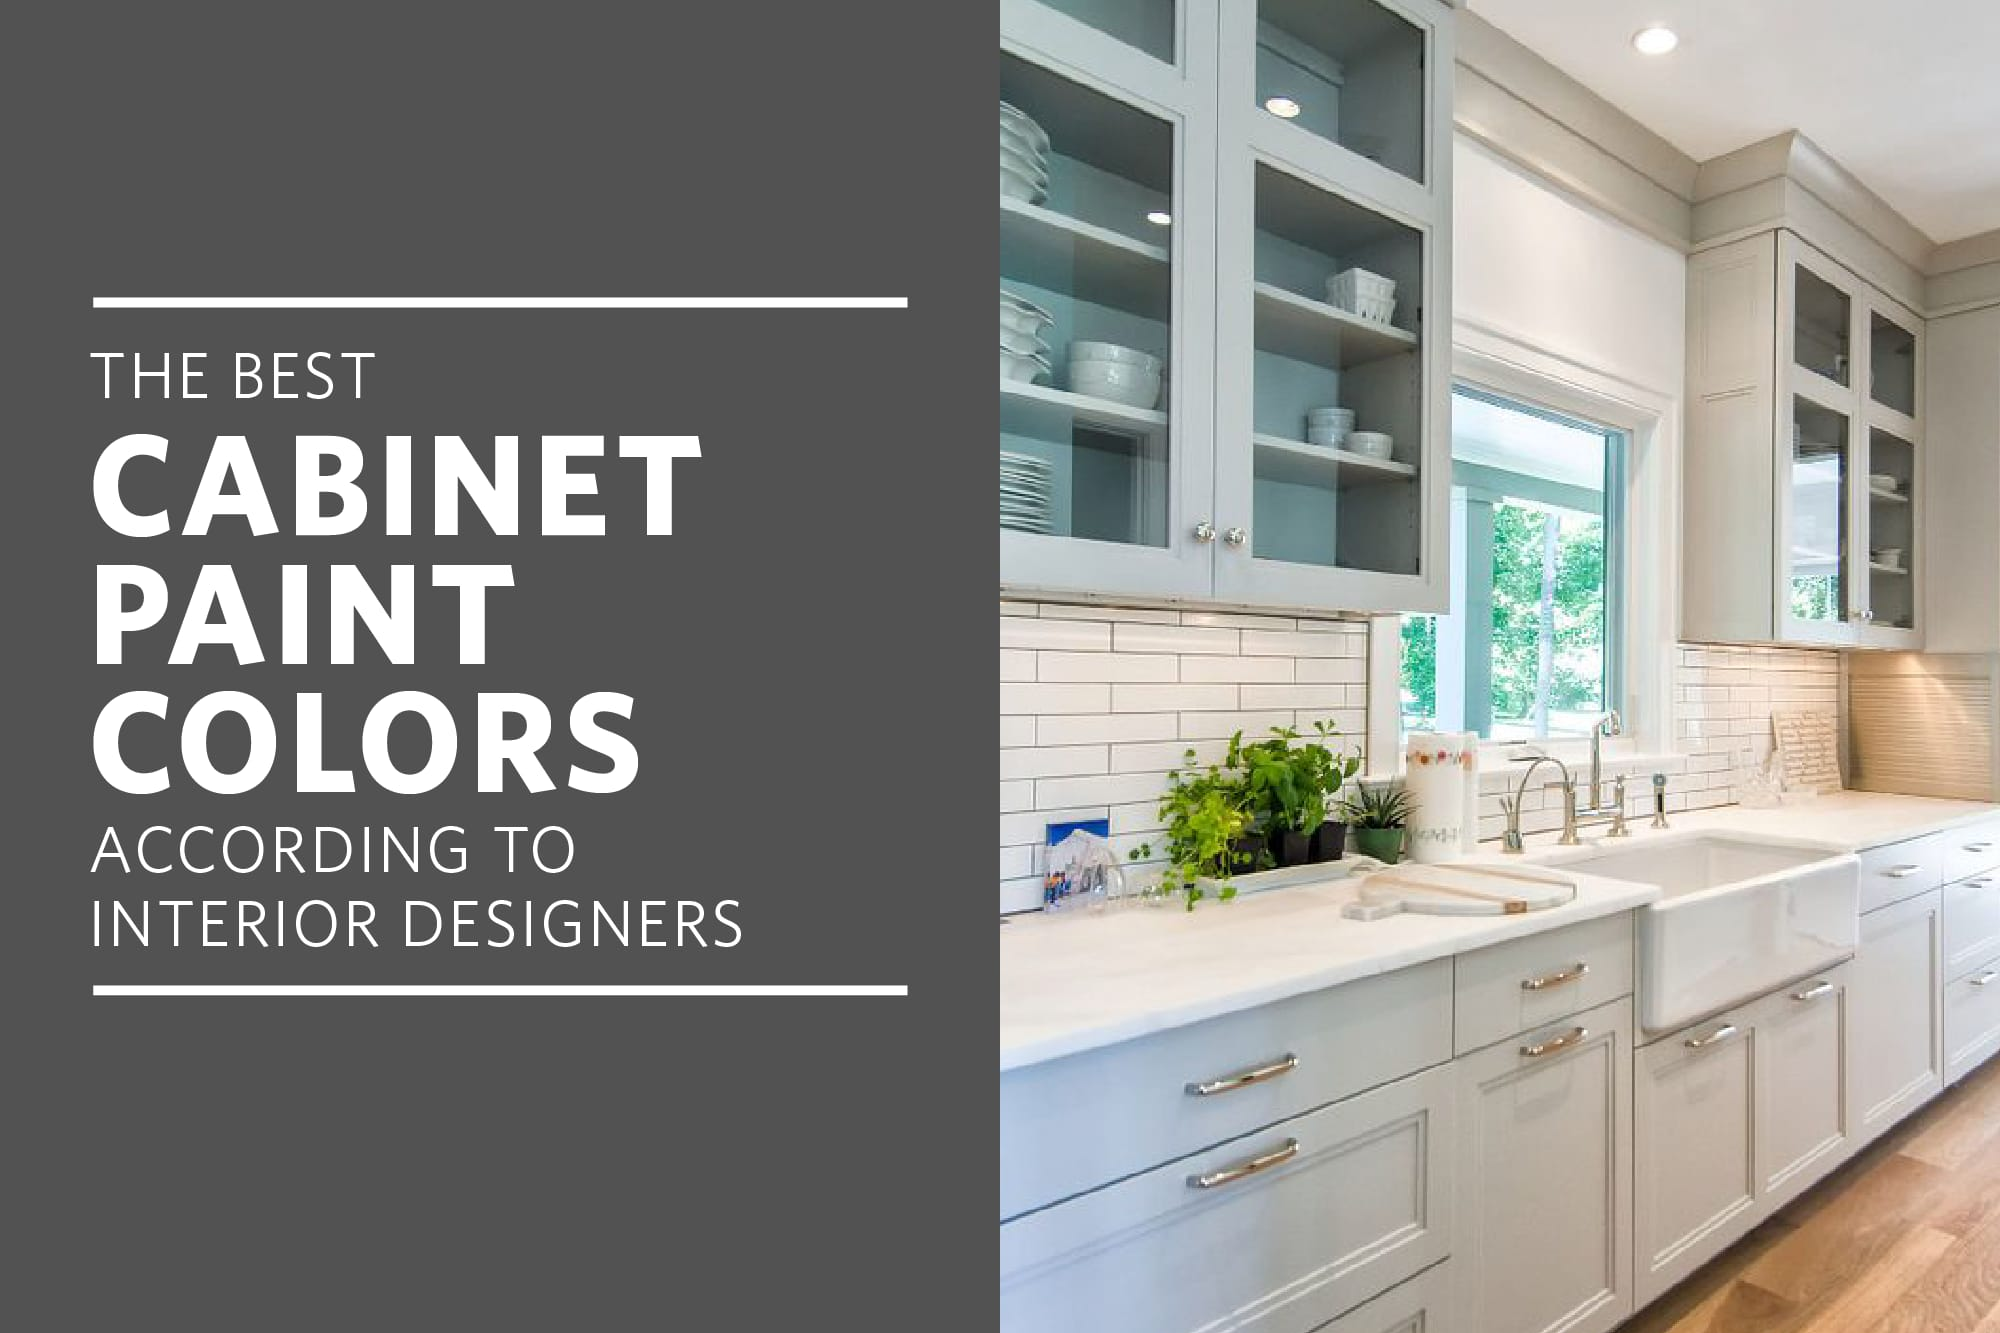 Kitchen Cabinet Paint Colors The Best Cabinet Paint Colors for a Happier Kitchen, According to Interior  Designers